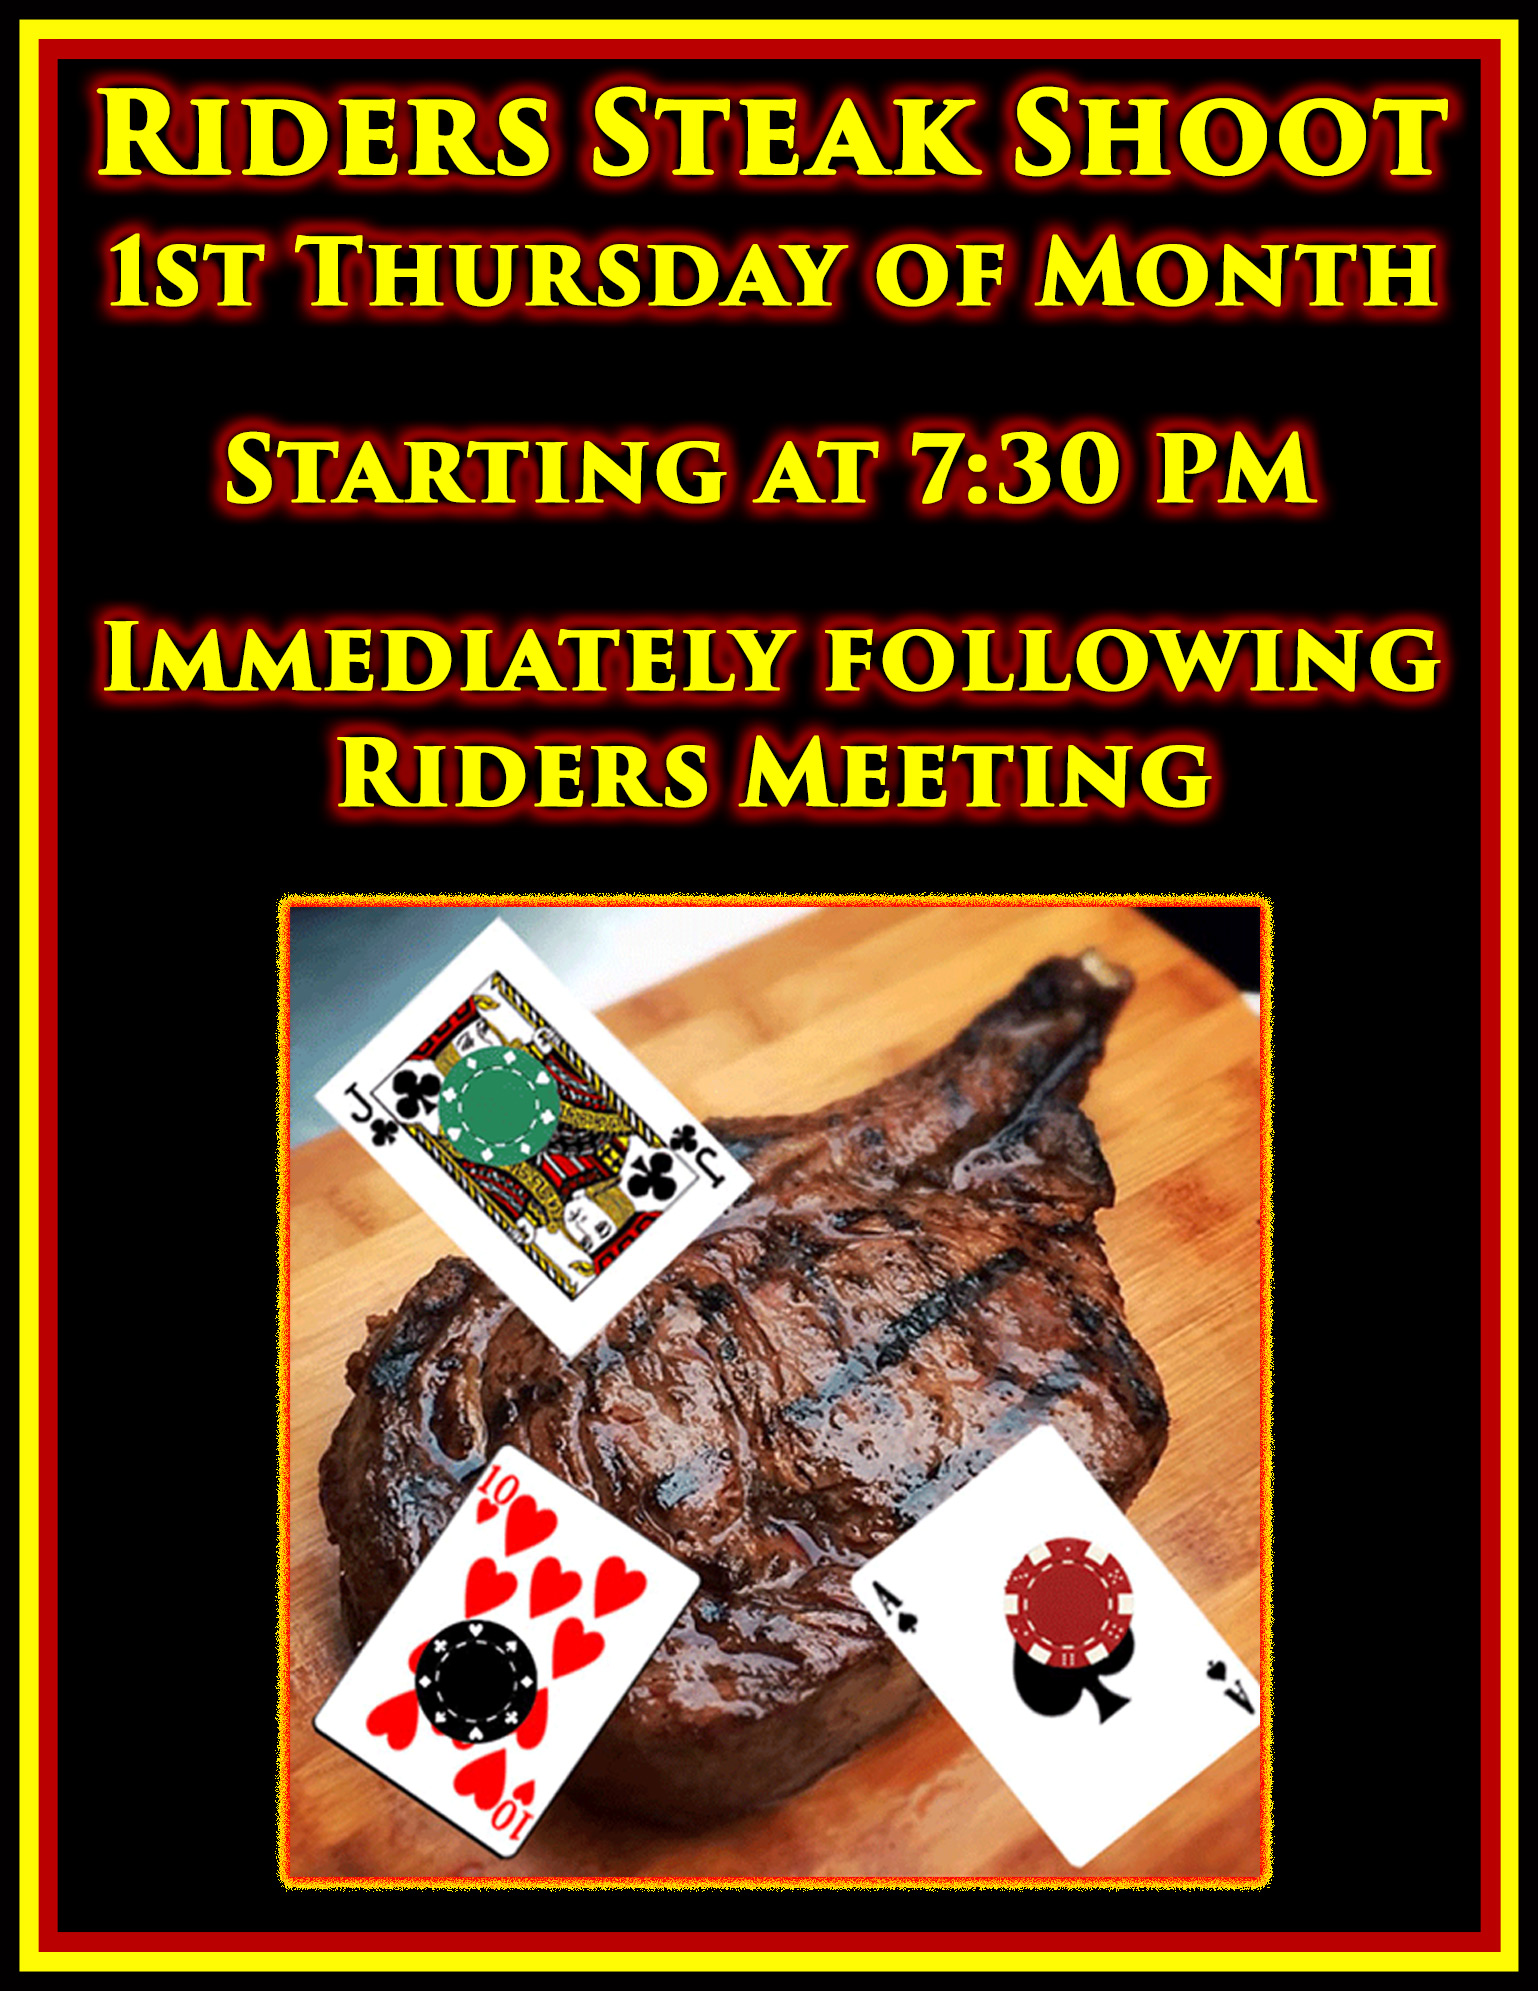 Riders Steak Shoot @ American Legion Post 117 | Palm Bay | Florida | United States